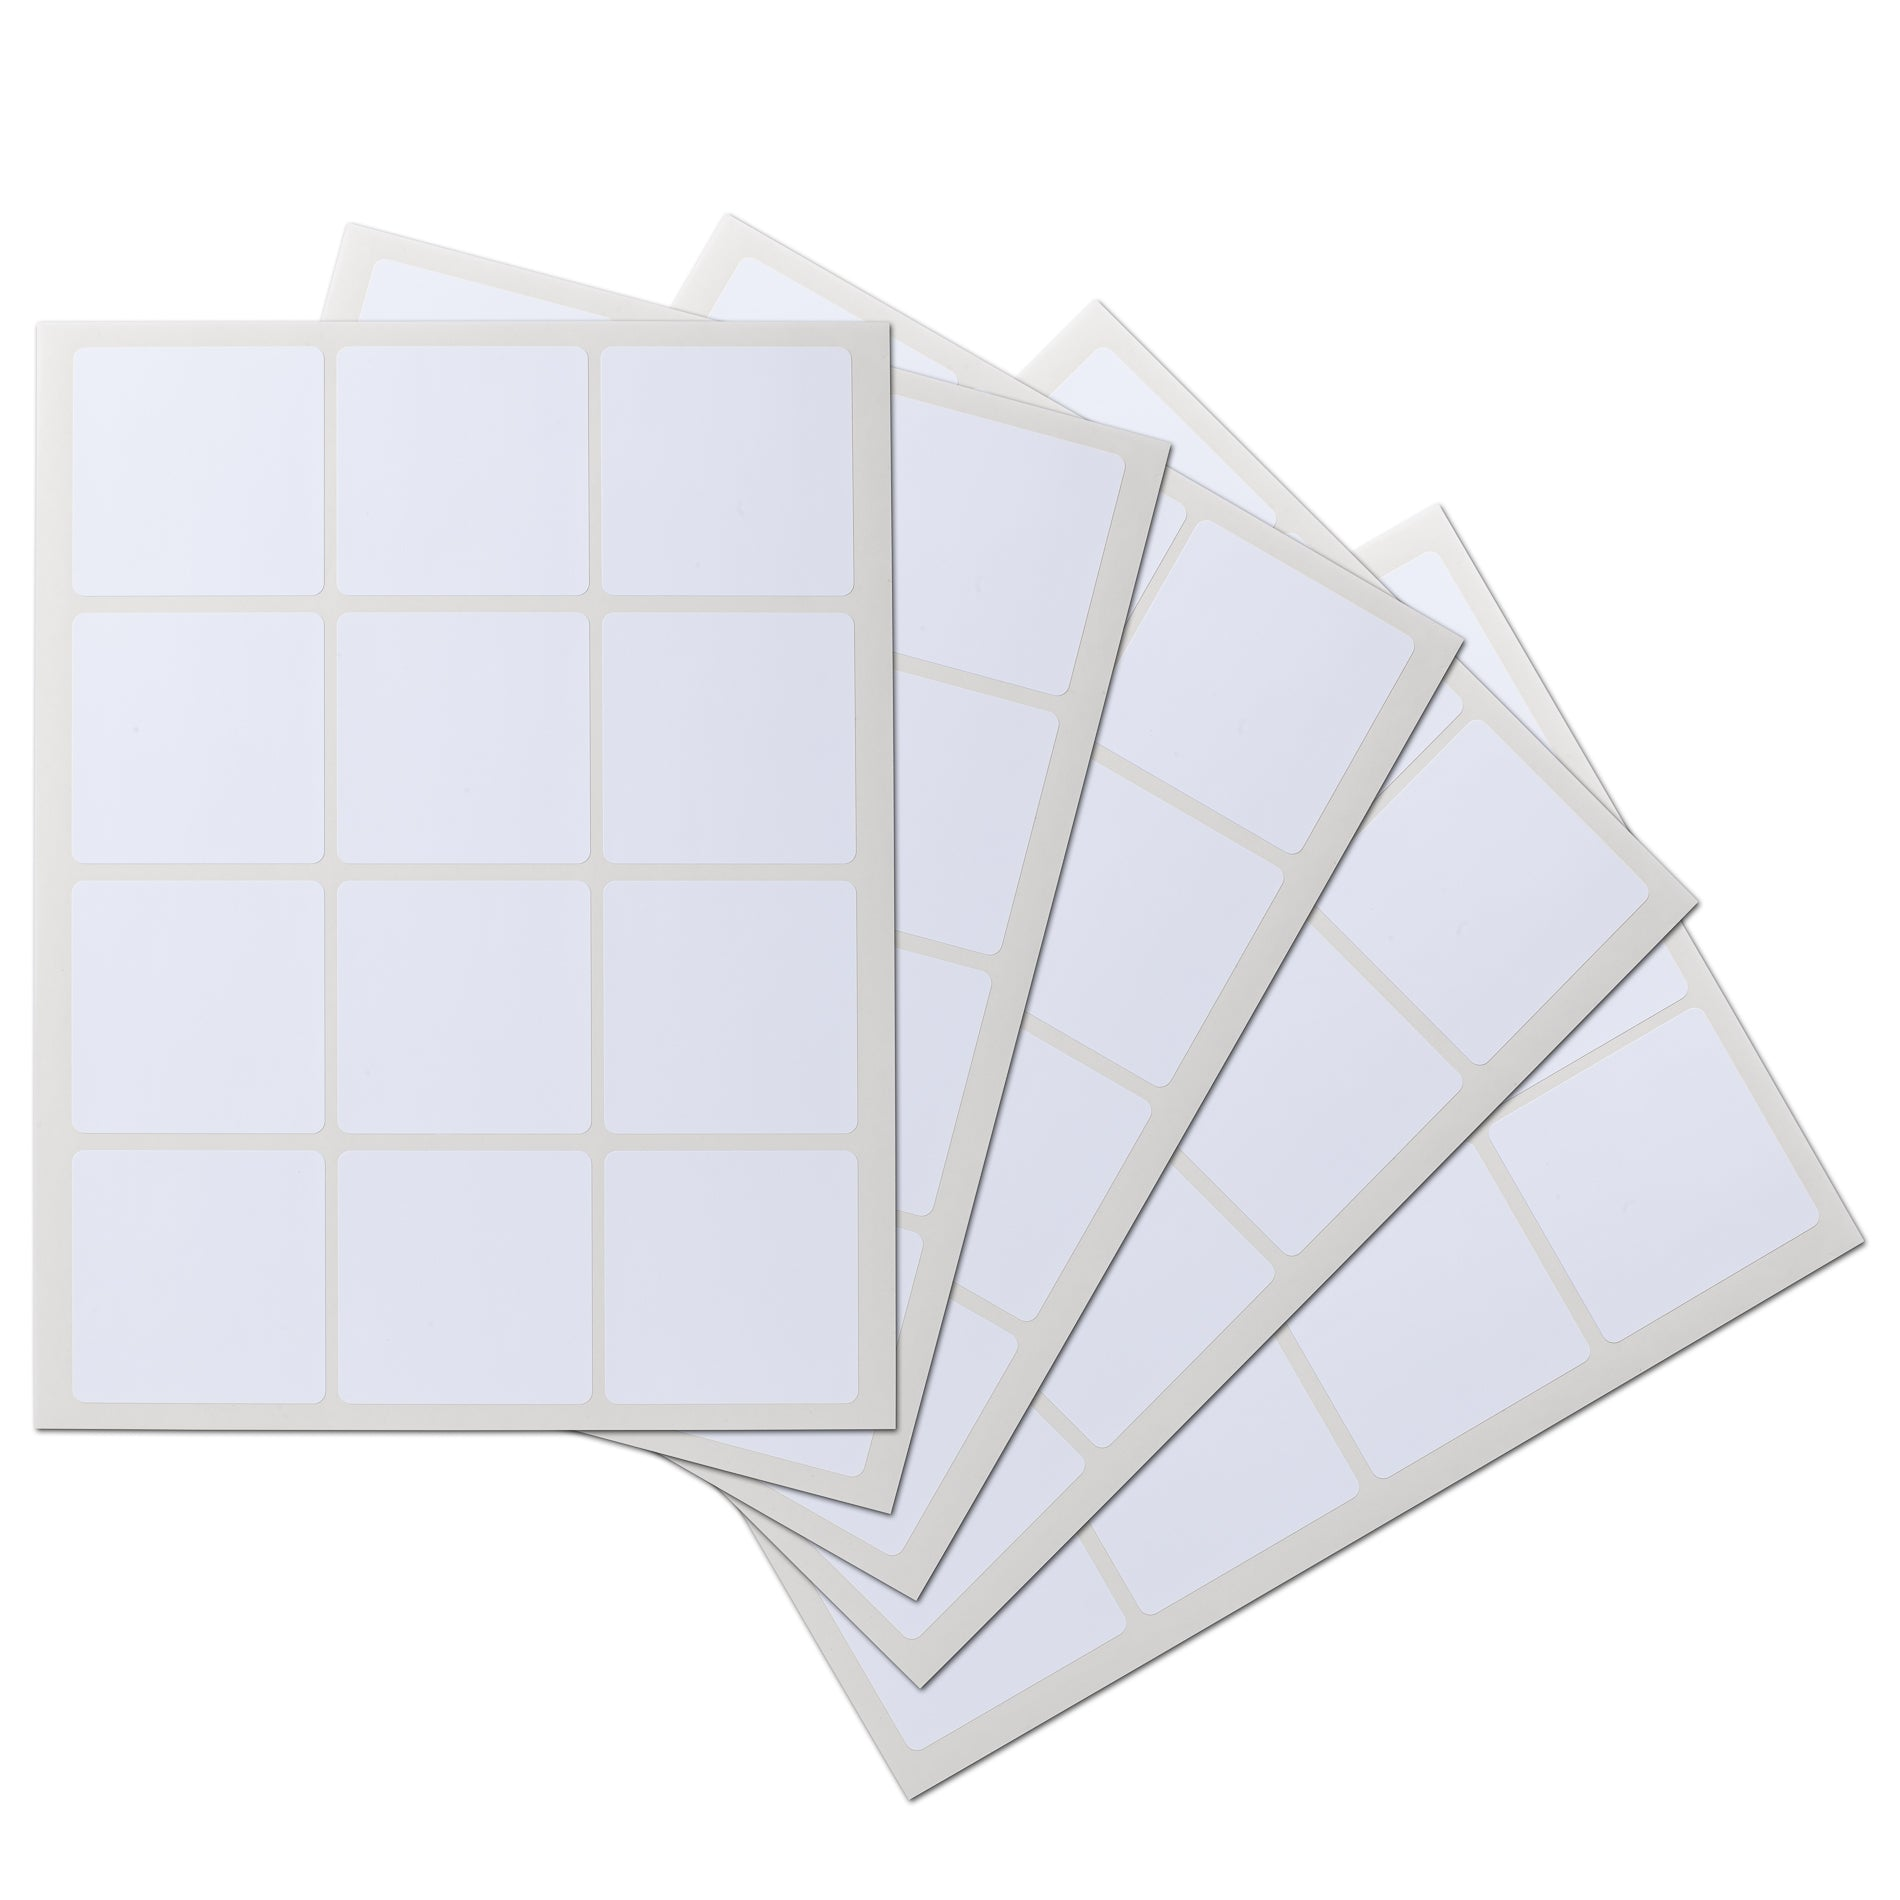 2.5 x 2.5 Square Waterproof Labels